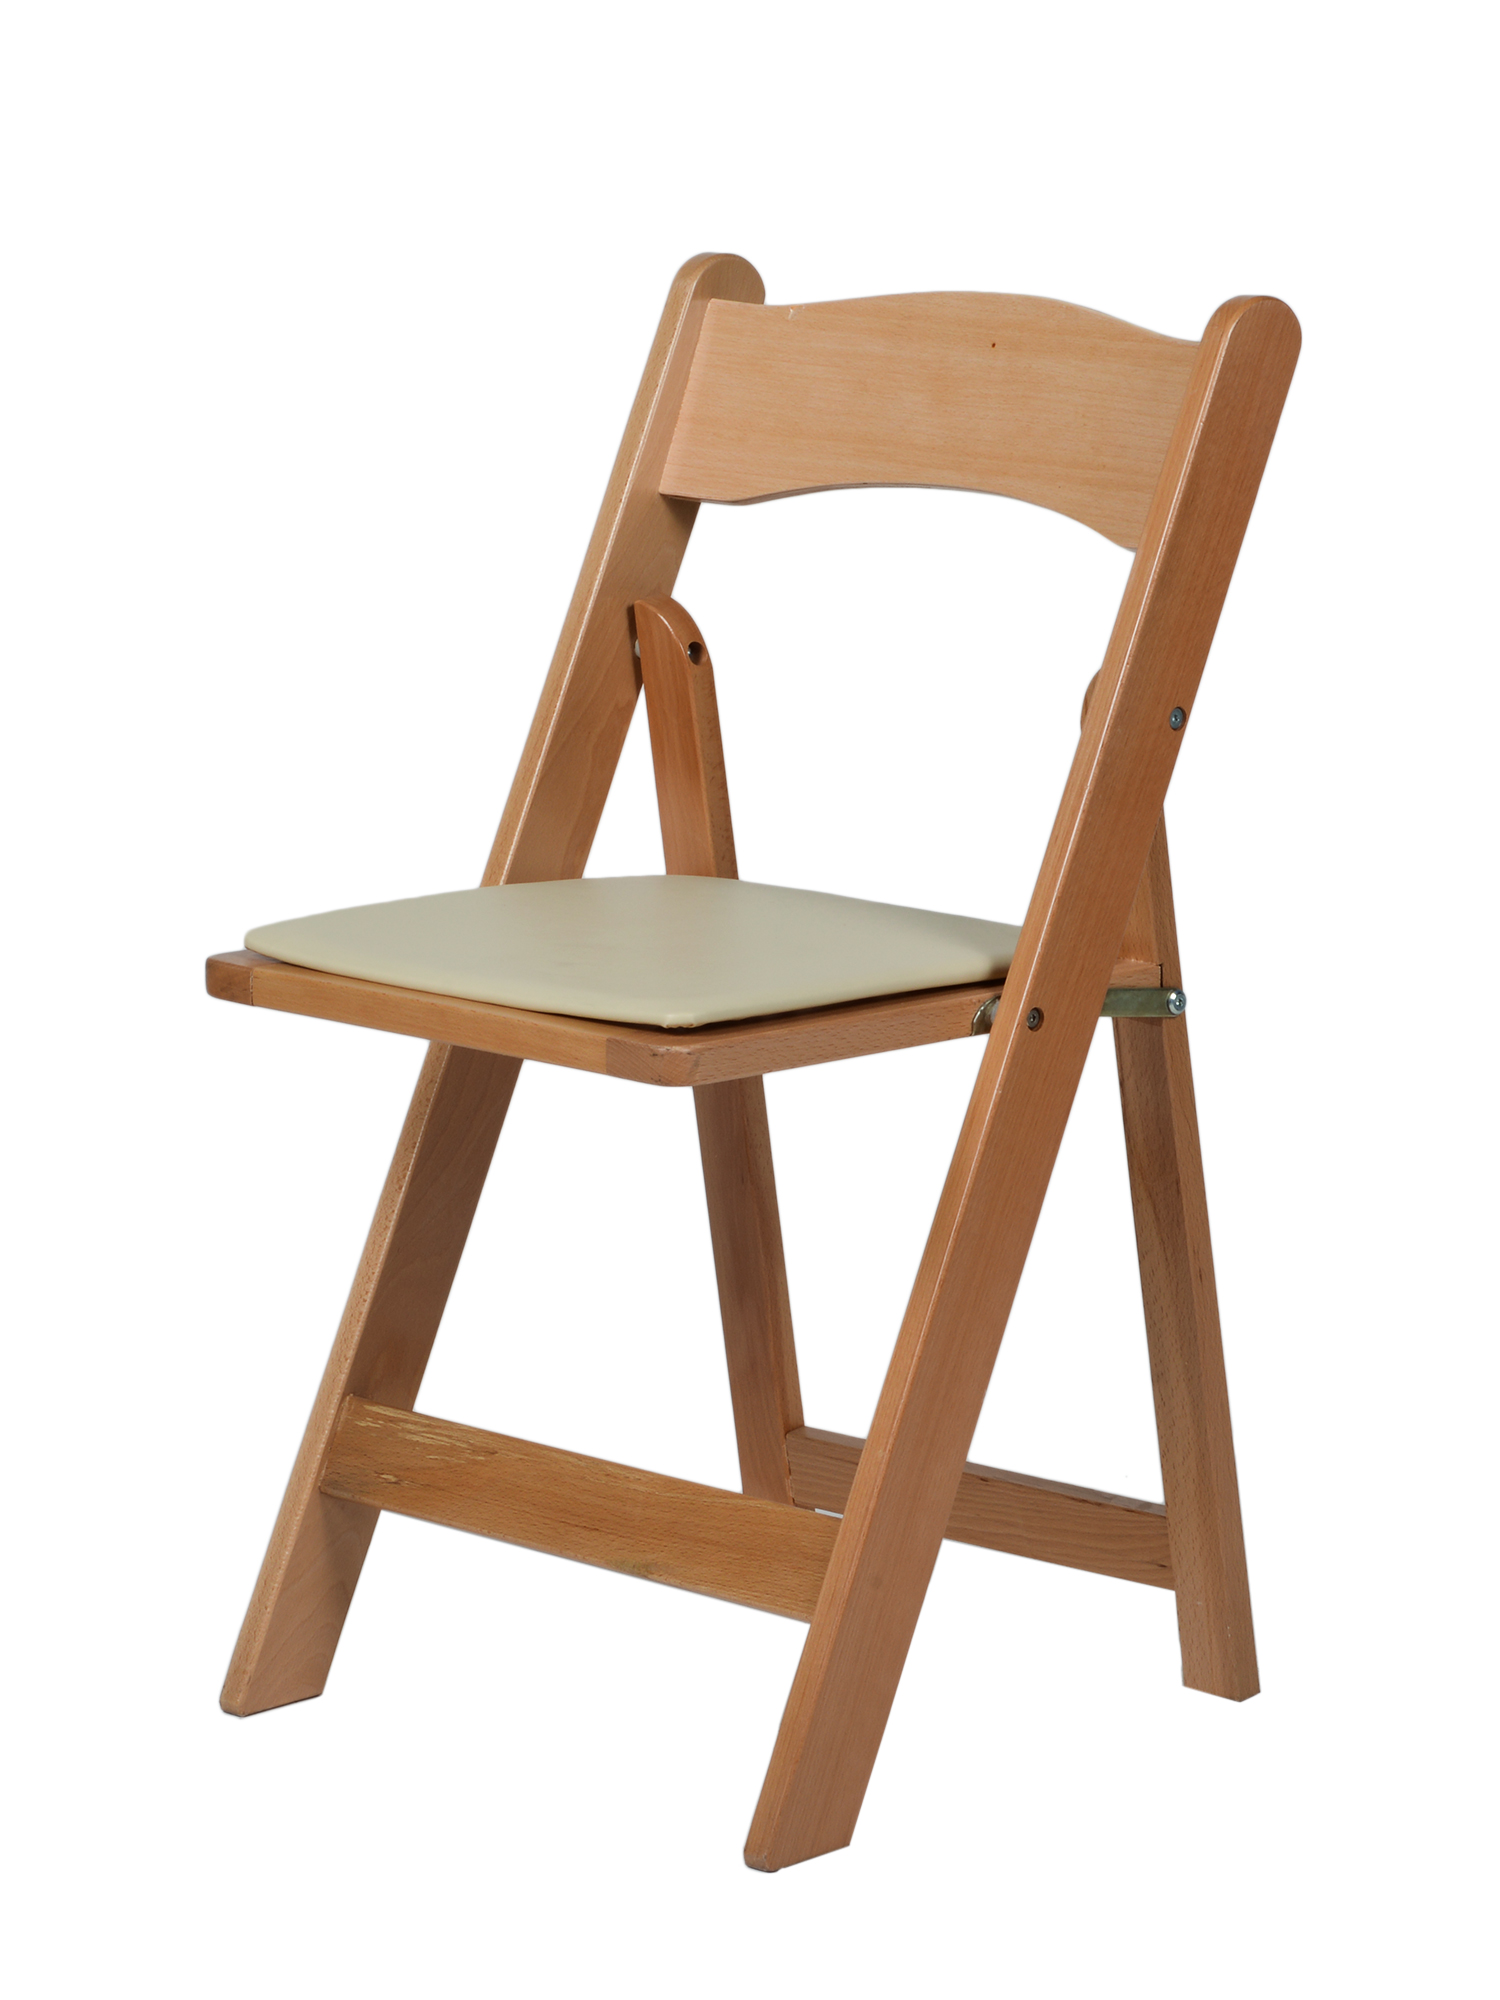 American Classic Wood Folding Chair  CSP